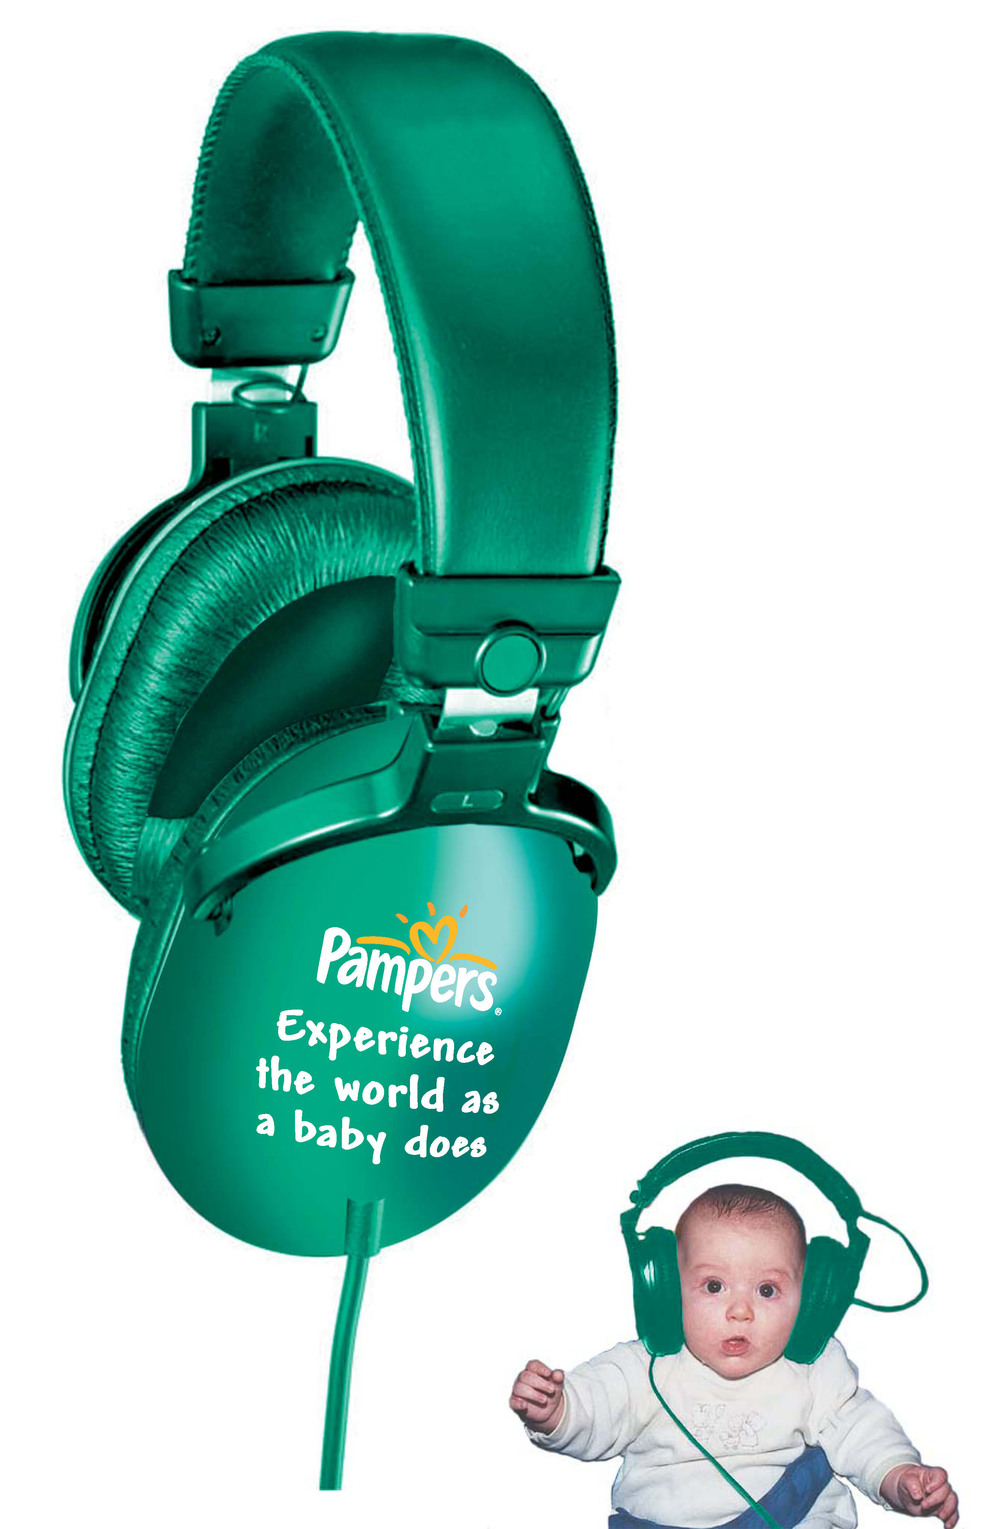 toybox_creative_pampers_experiential_headphones.jpg